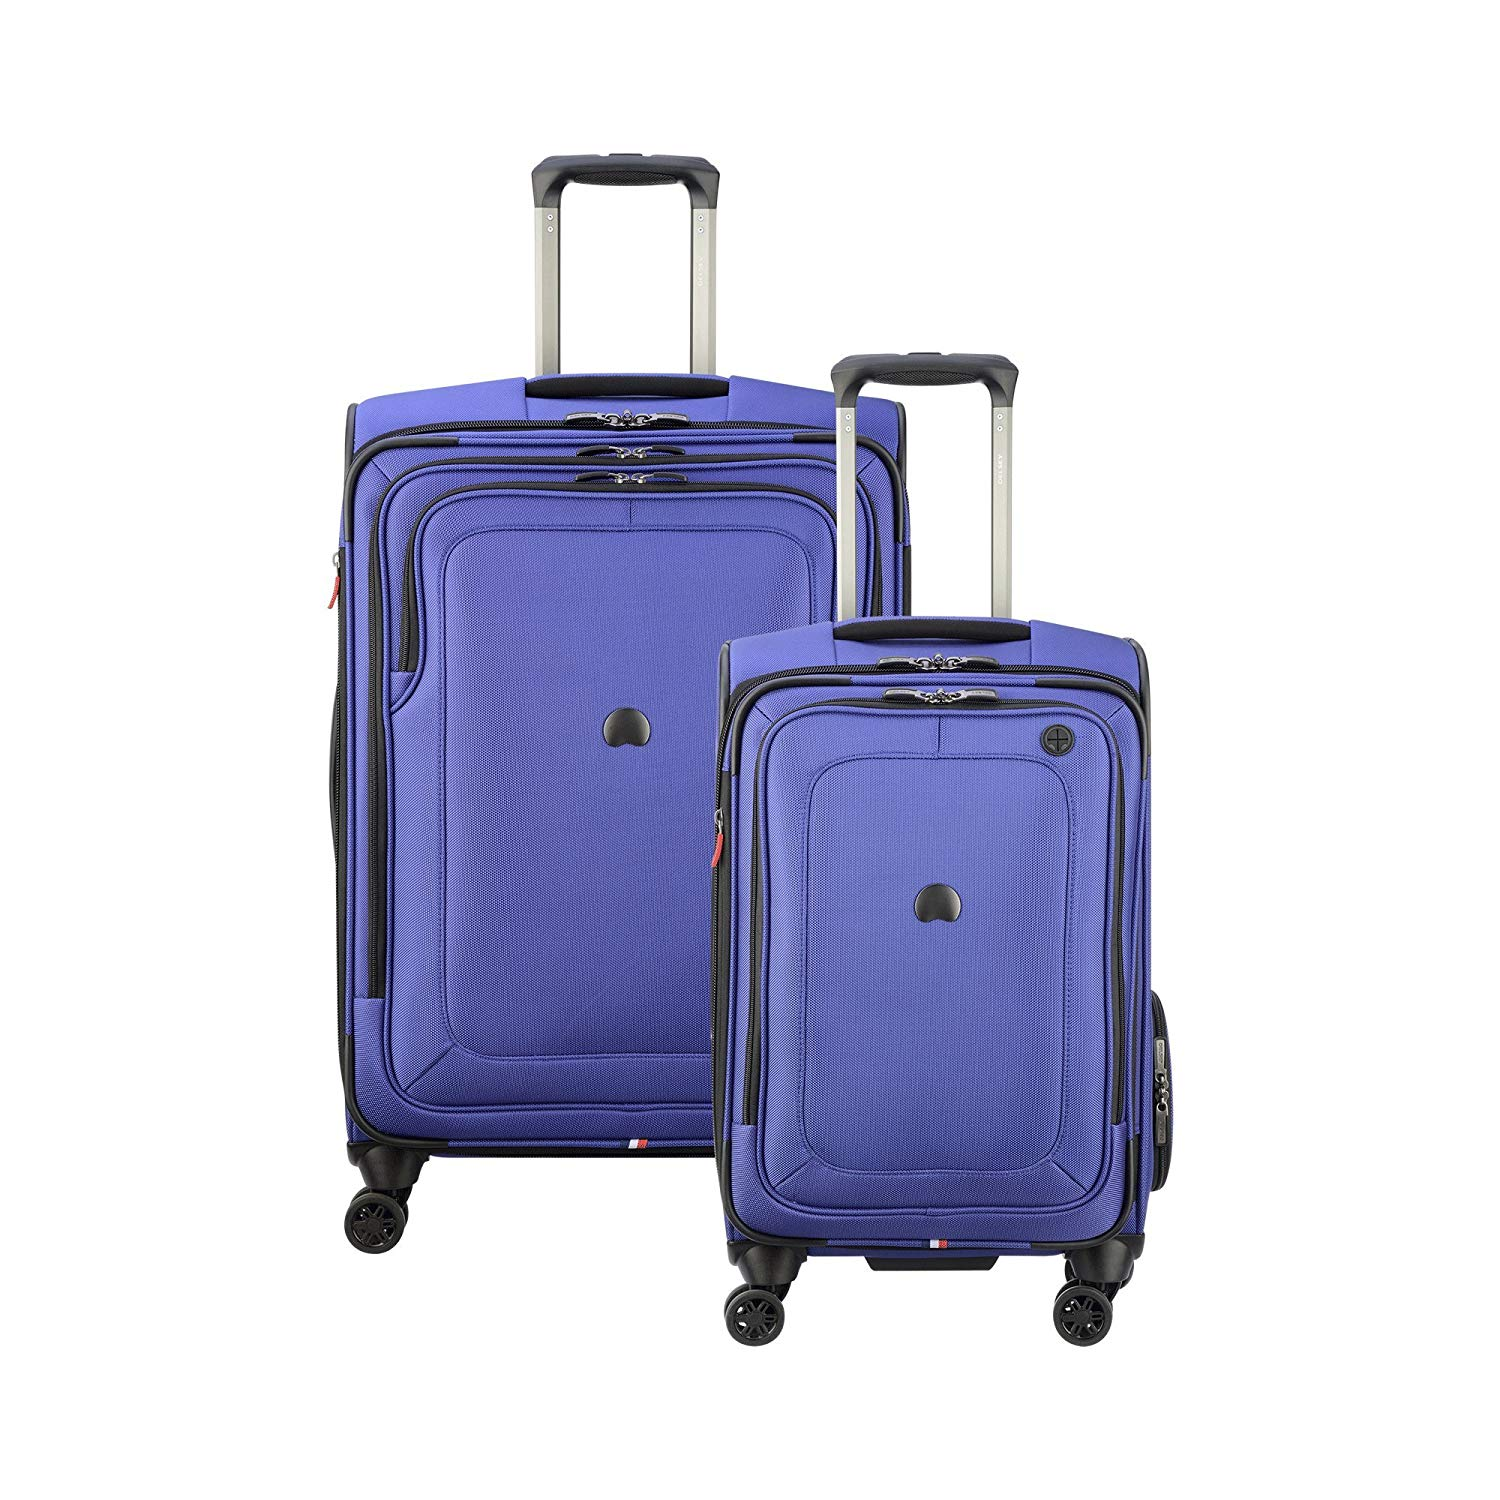 d31460b9c Get Quotations · Delsey Luggage Cruise Lite Softside Luggage Set (21